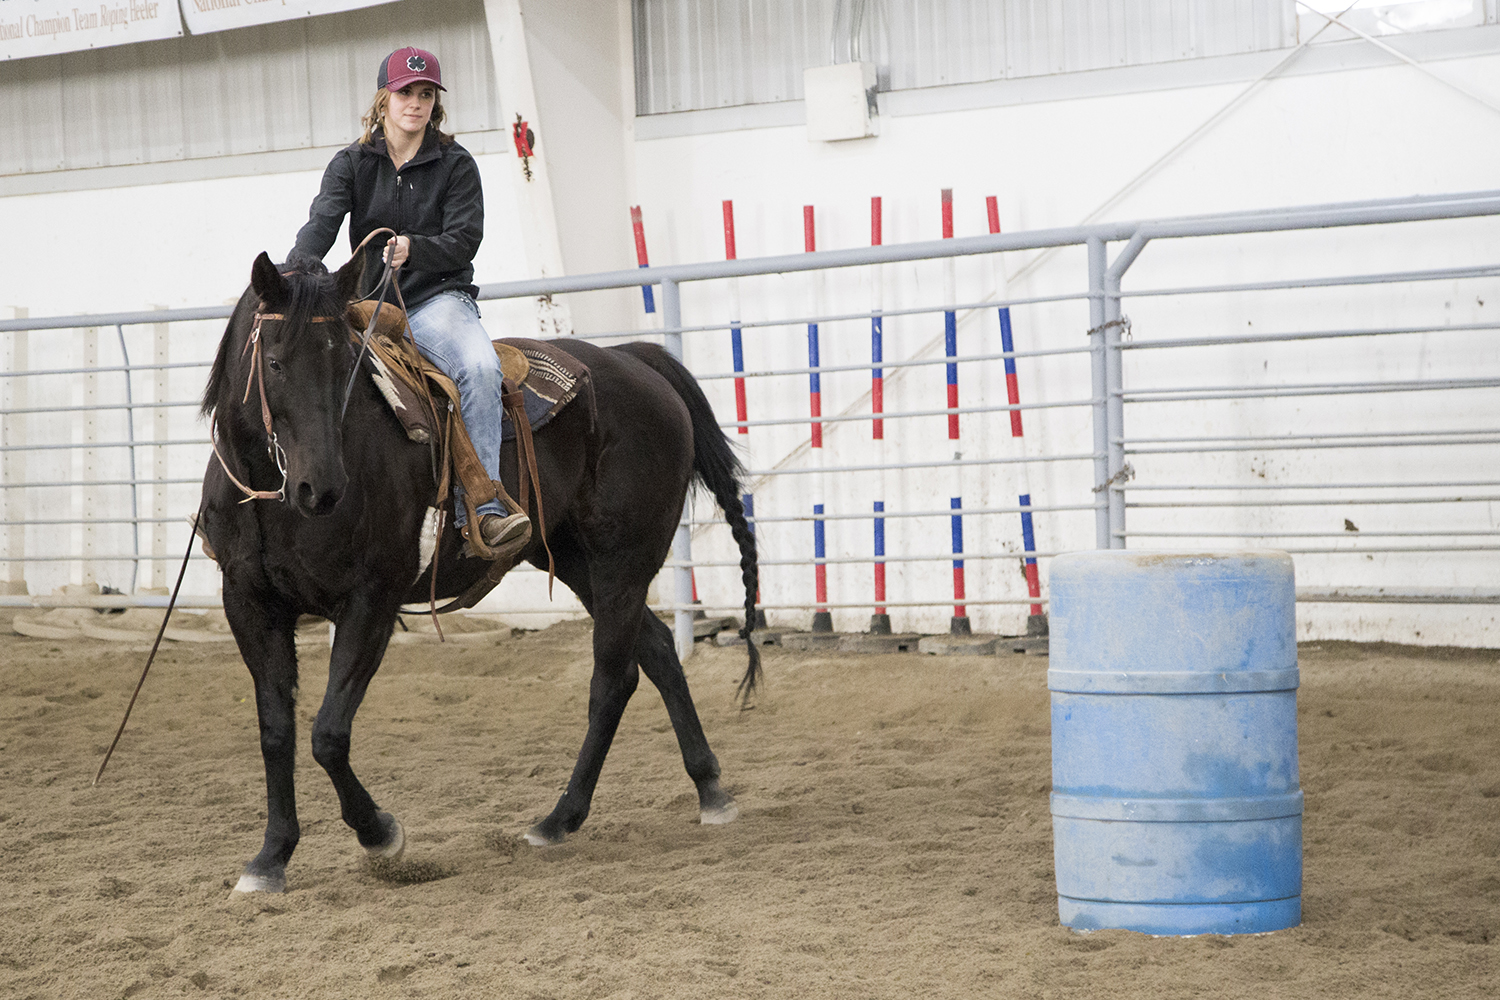 CWC student rides her horse around a barrel for a barrel clinic class